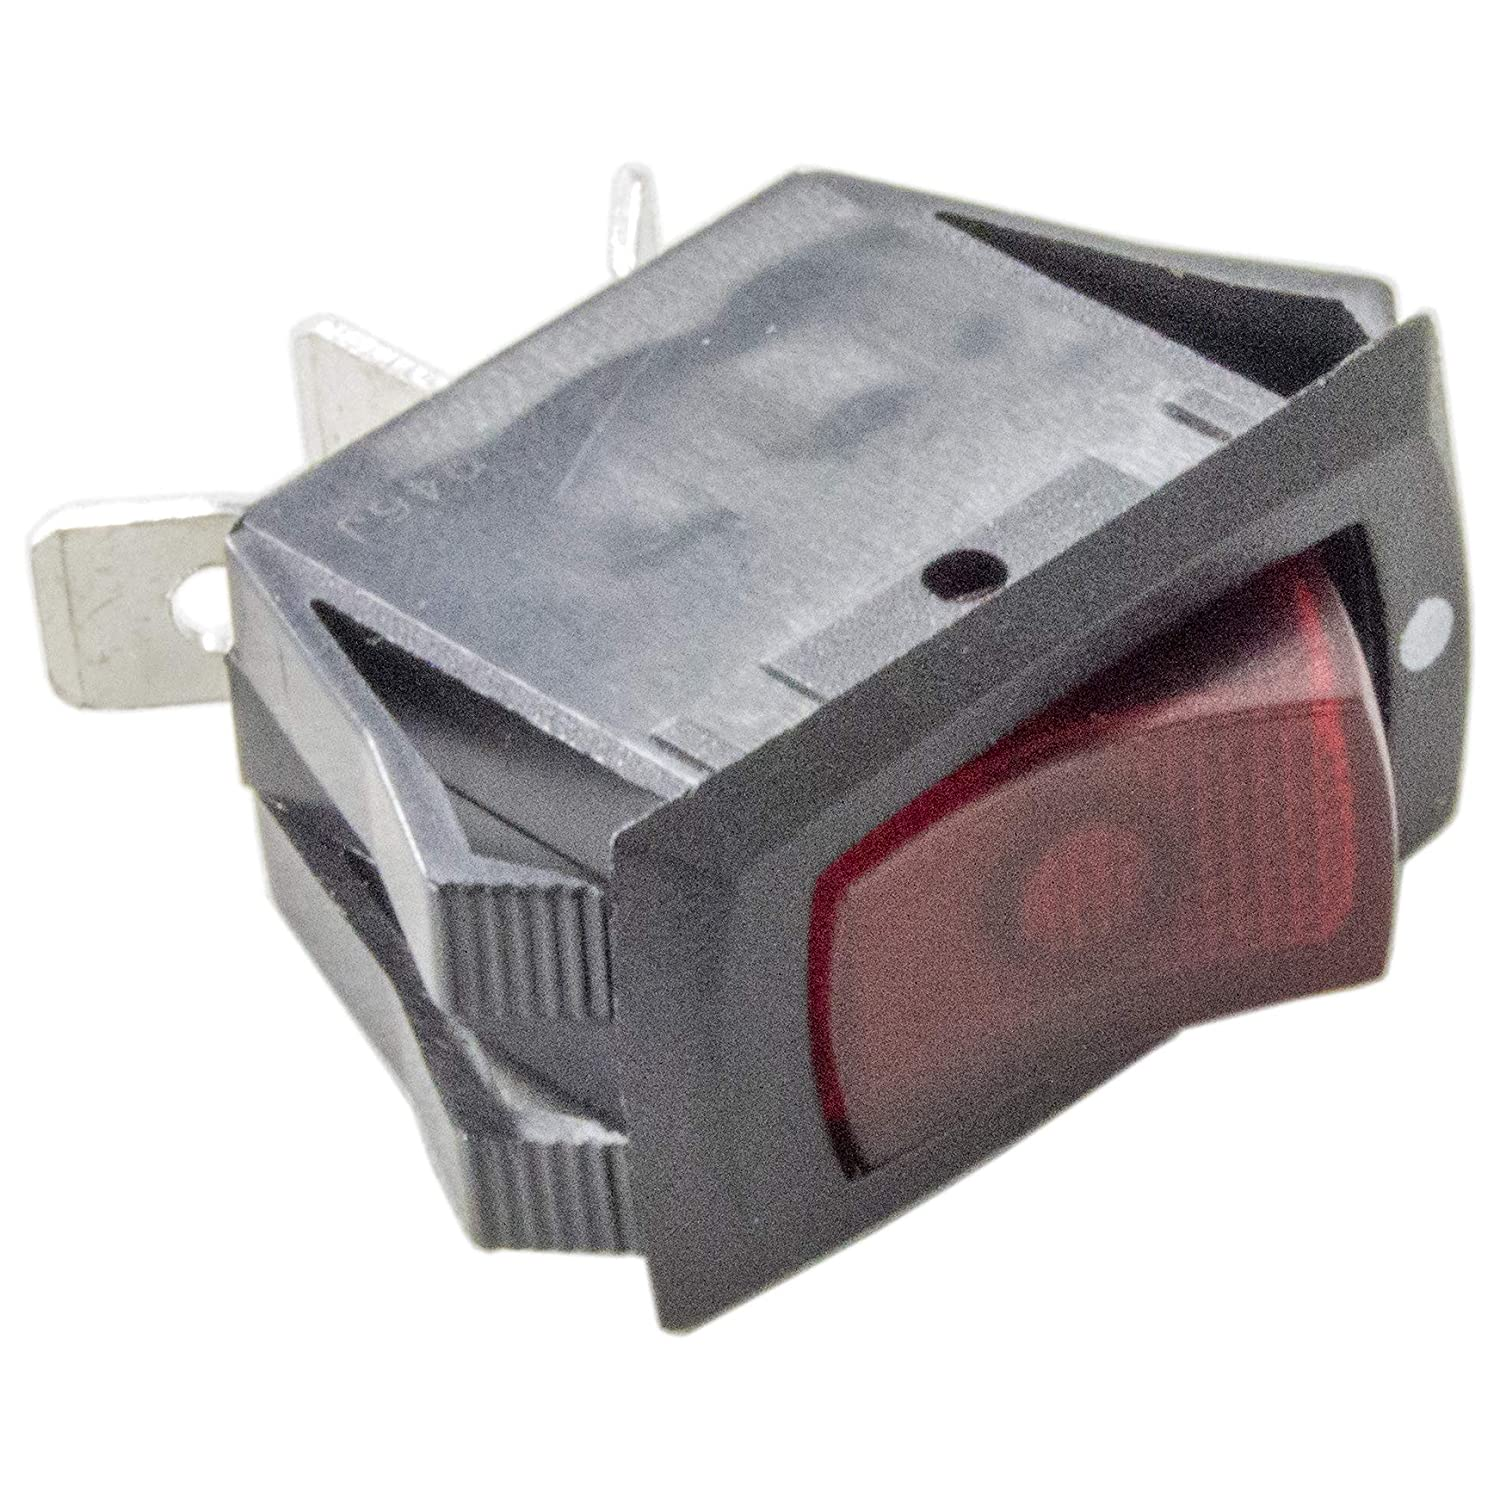 Useful Large On-Off Rectangle Rocker Switch DPST 250VAC 15A 31*25mm 5pcs IN9Z